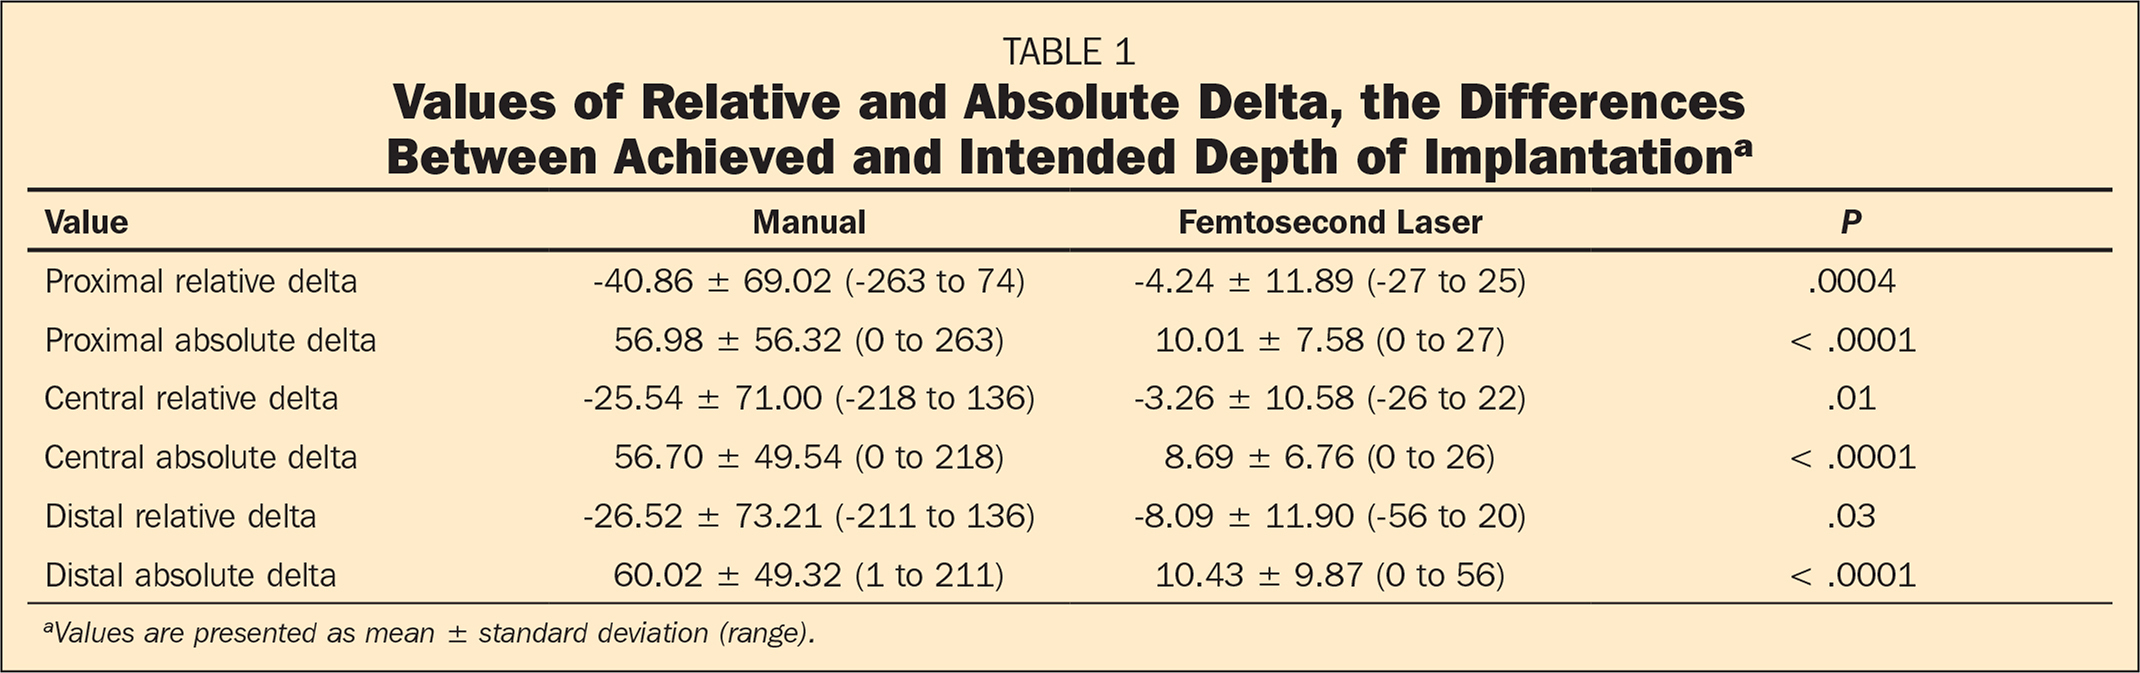 Values of Relative and Absolute Delta, the Differences Between Achieved and Intended Depth of Implantationa